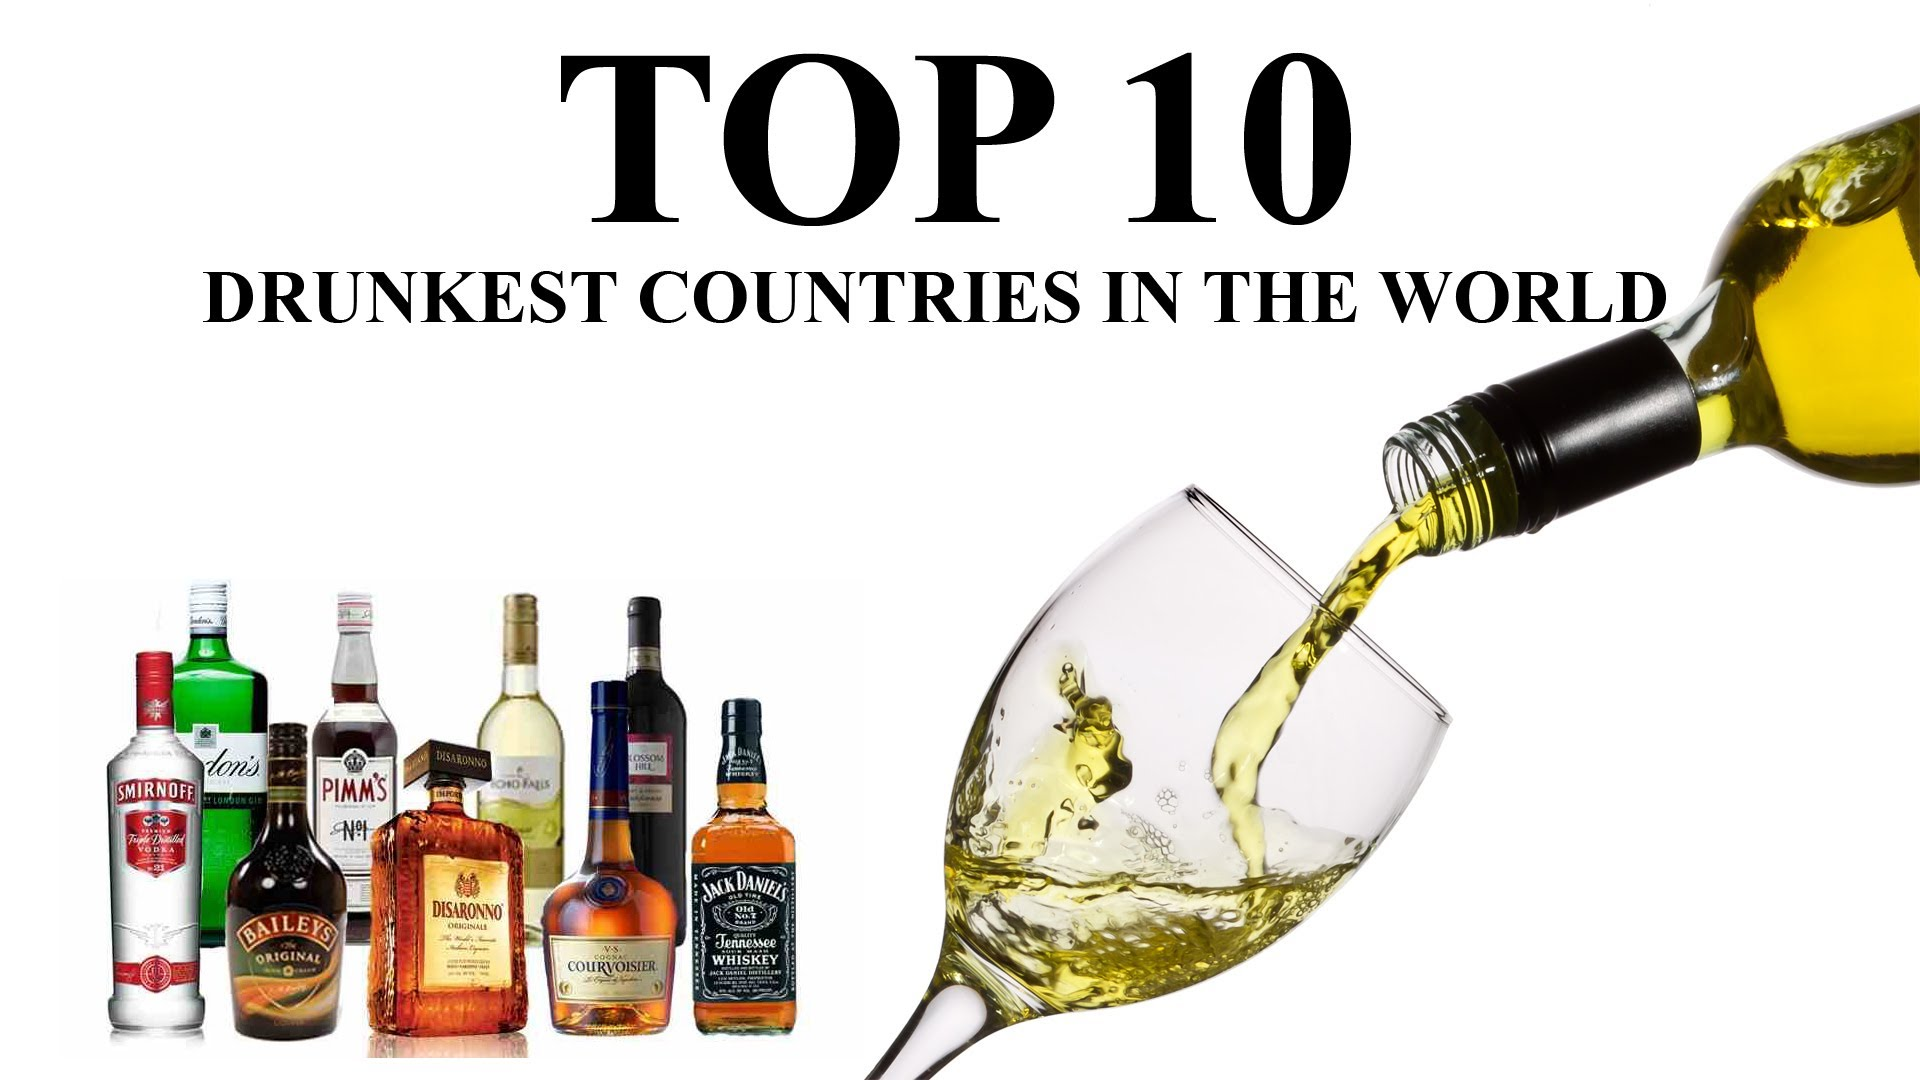 The World's Top 10 Drunkest Countries From The World Health Organization